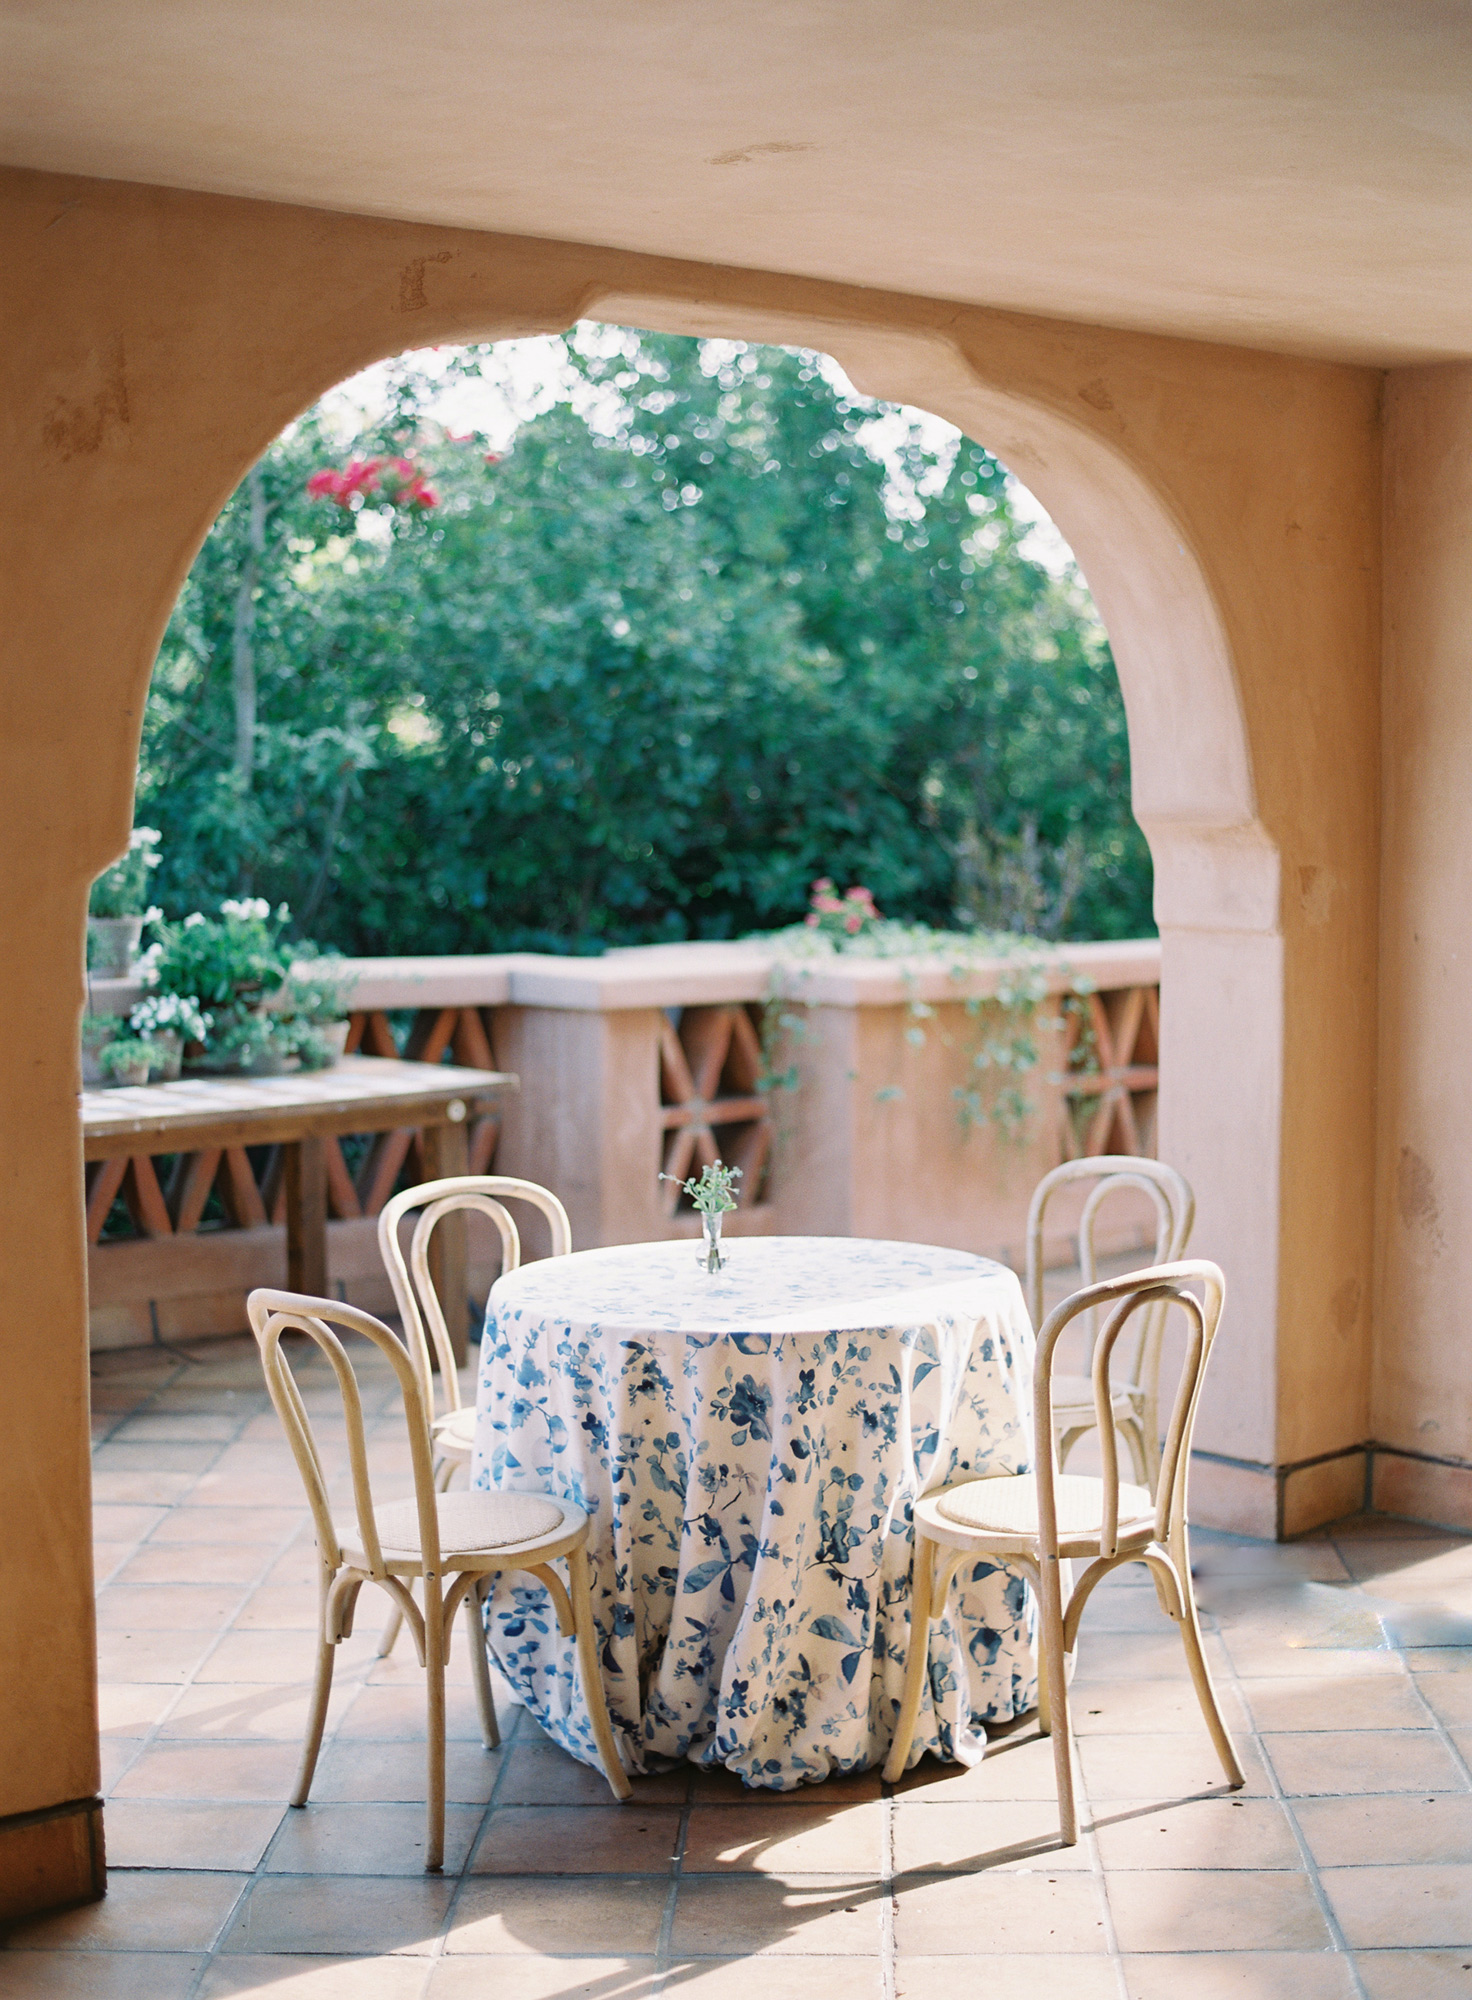 4-person table with blue and white floral table cloth